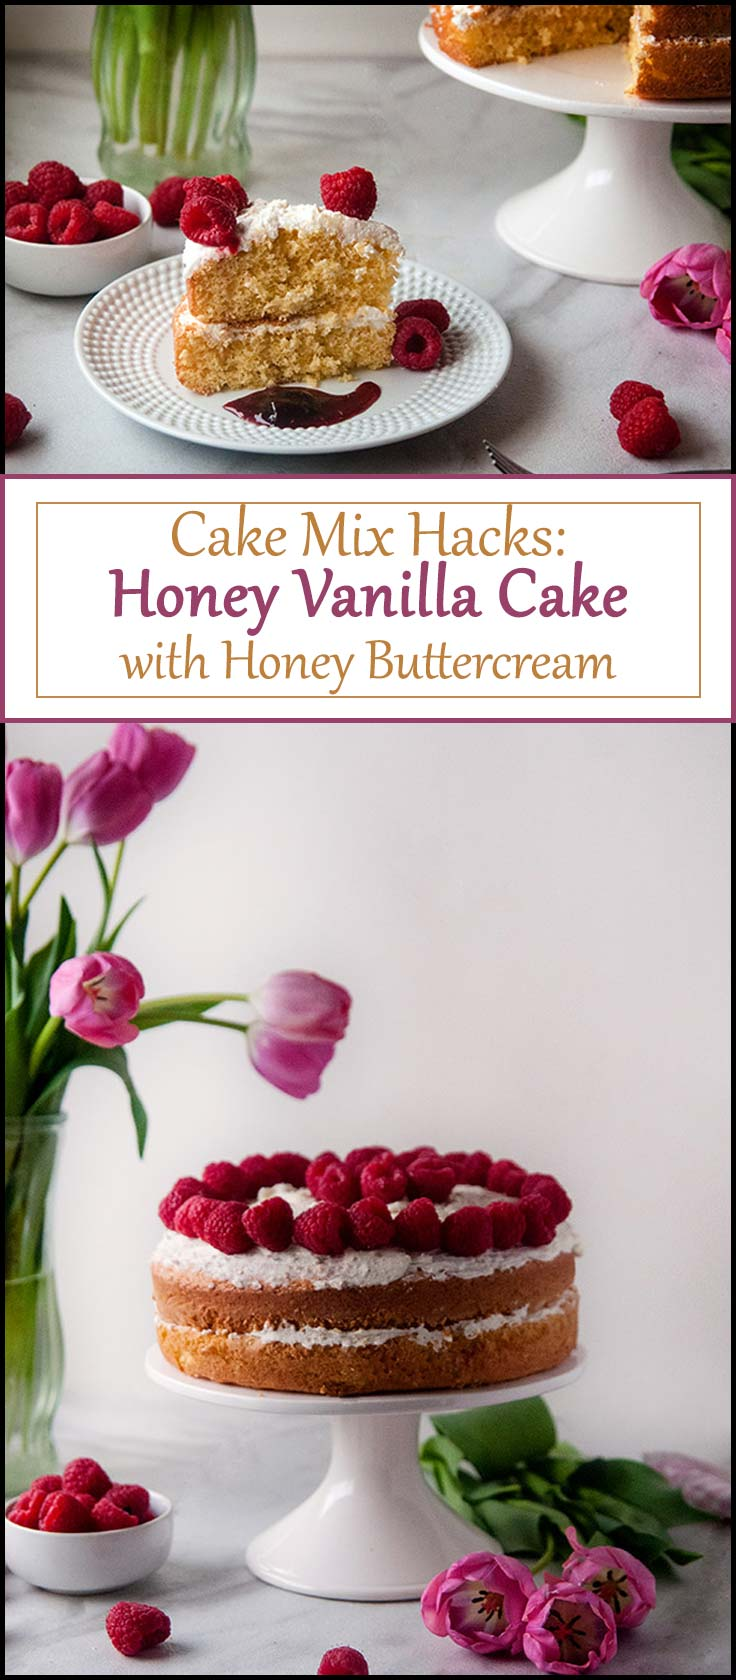 Cake Mix Hacks: Honey Vanilla Cake with Honey Buttercream is an easy springtime cake that makes the perfect easy dessert recipe for any occassion from www.seasonedsprinkles.com